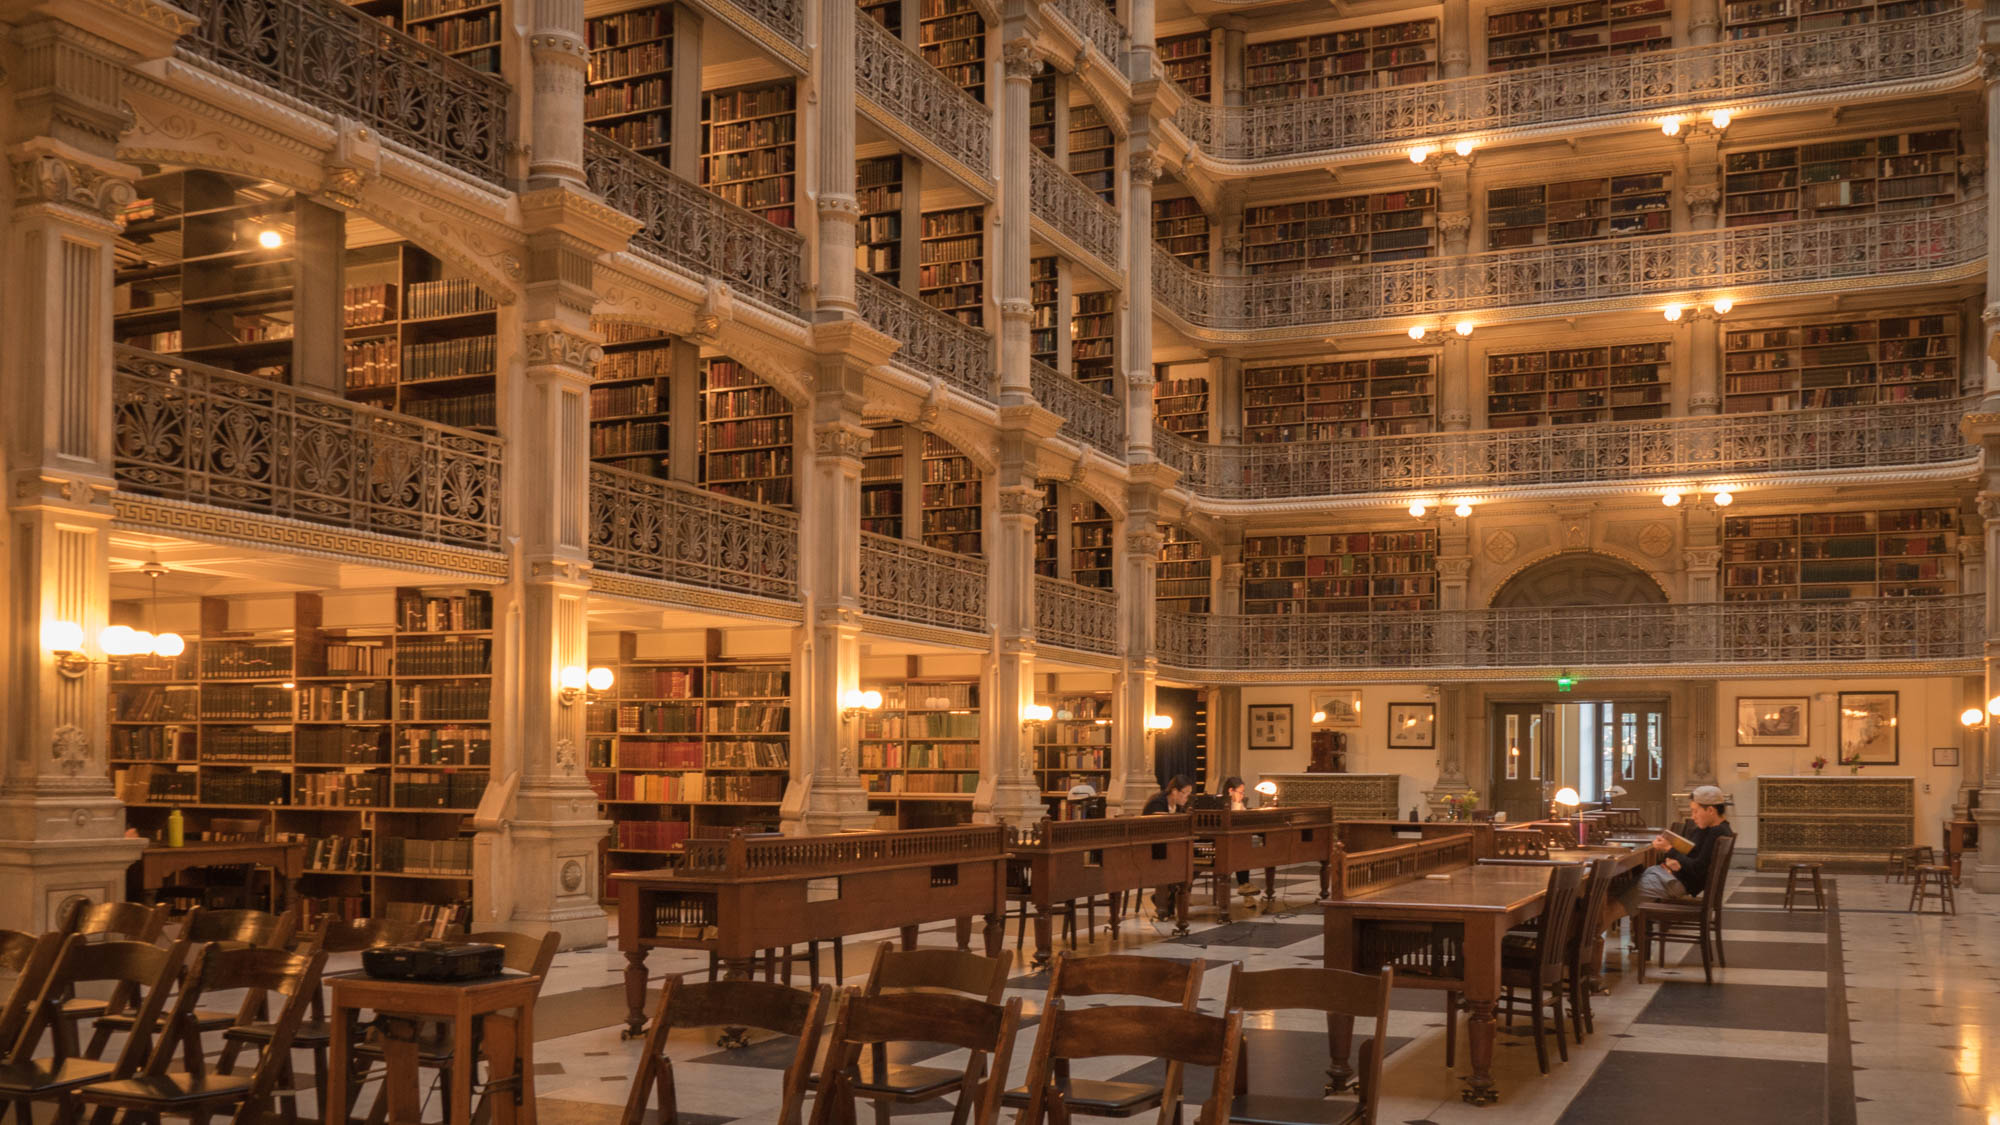 The main room of the George Peabody Library where  Sleepless In Seattle  and  Washington Square  were filmed.